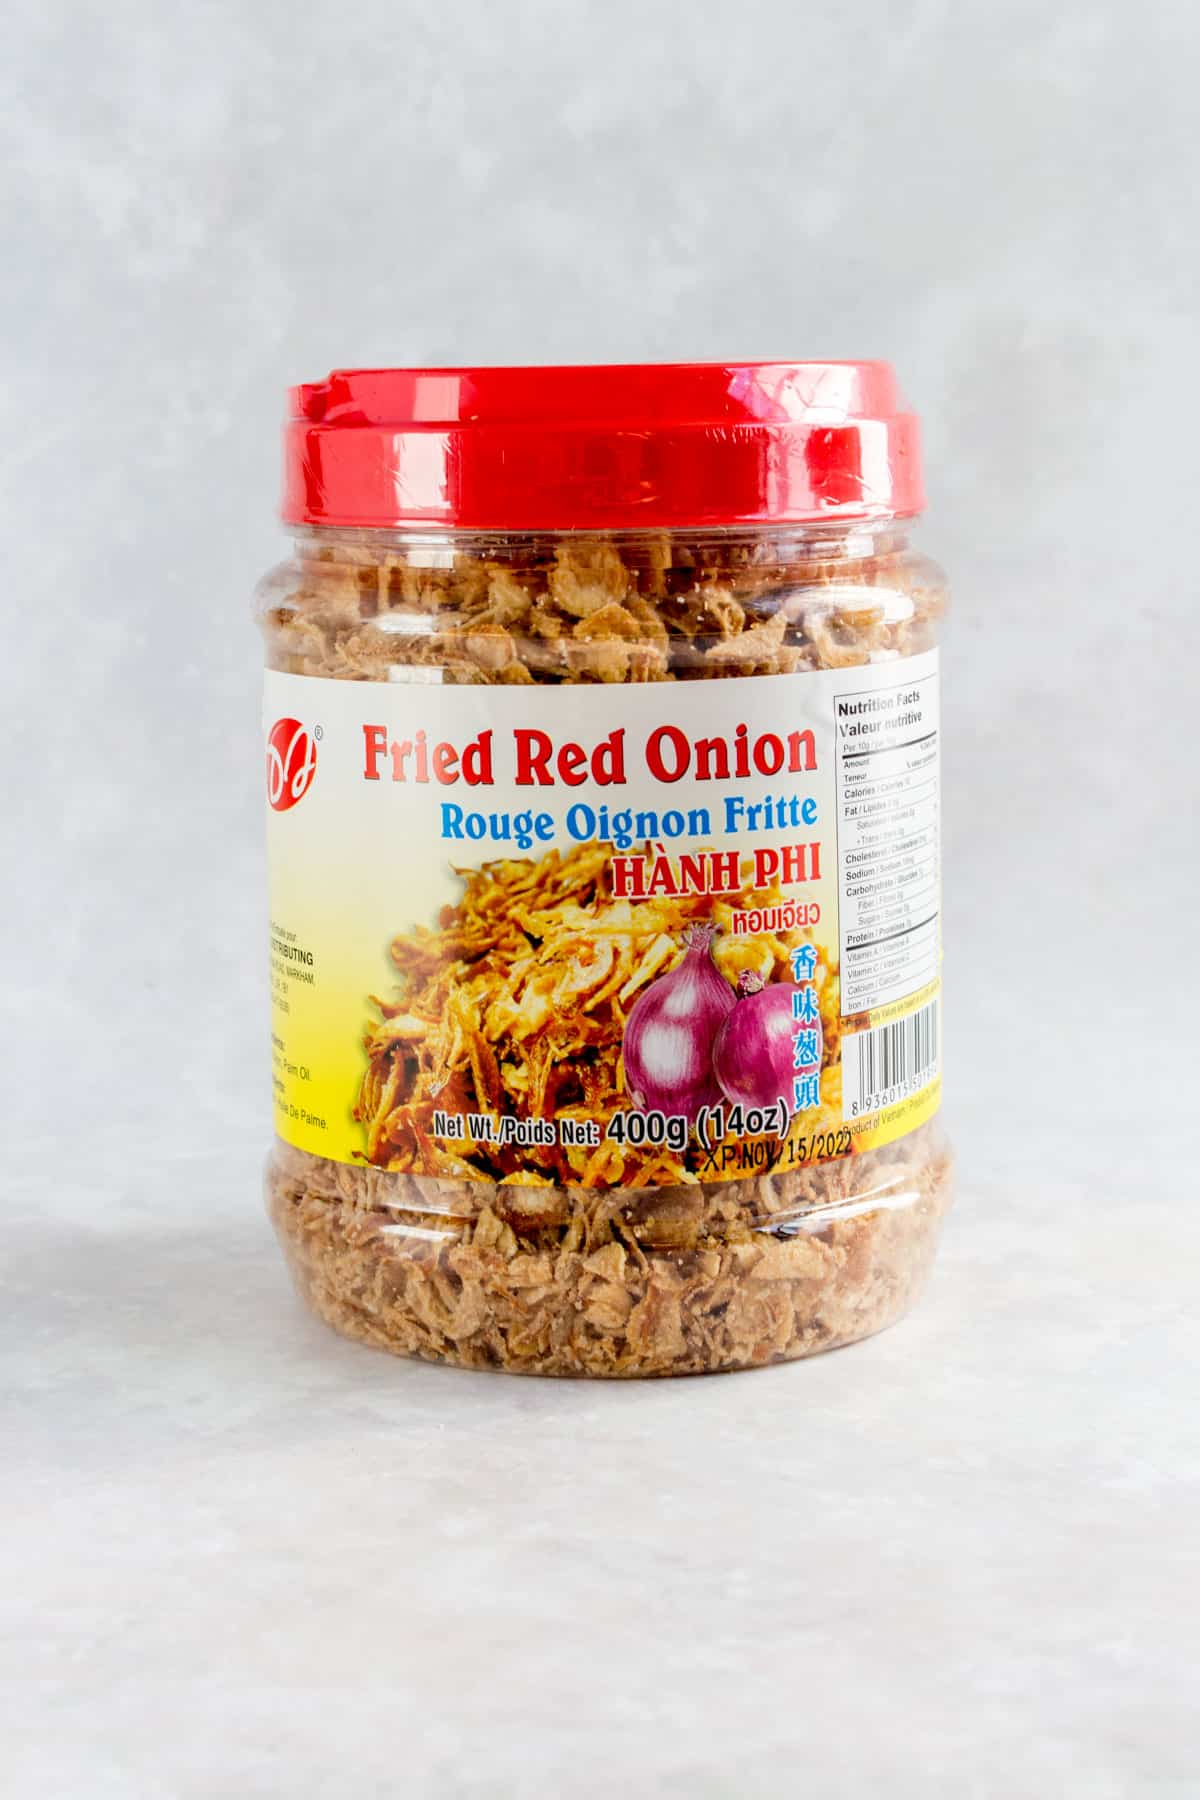 Fried red onions.